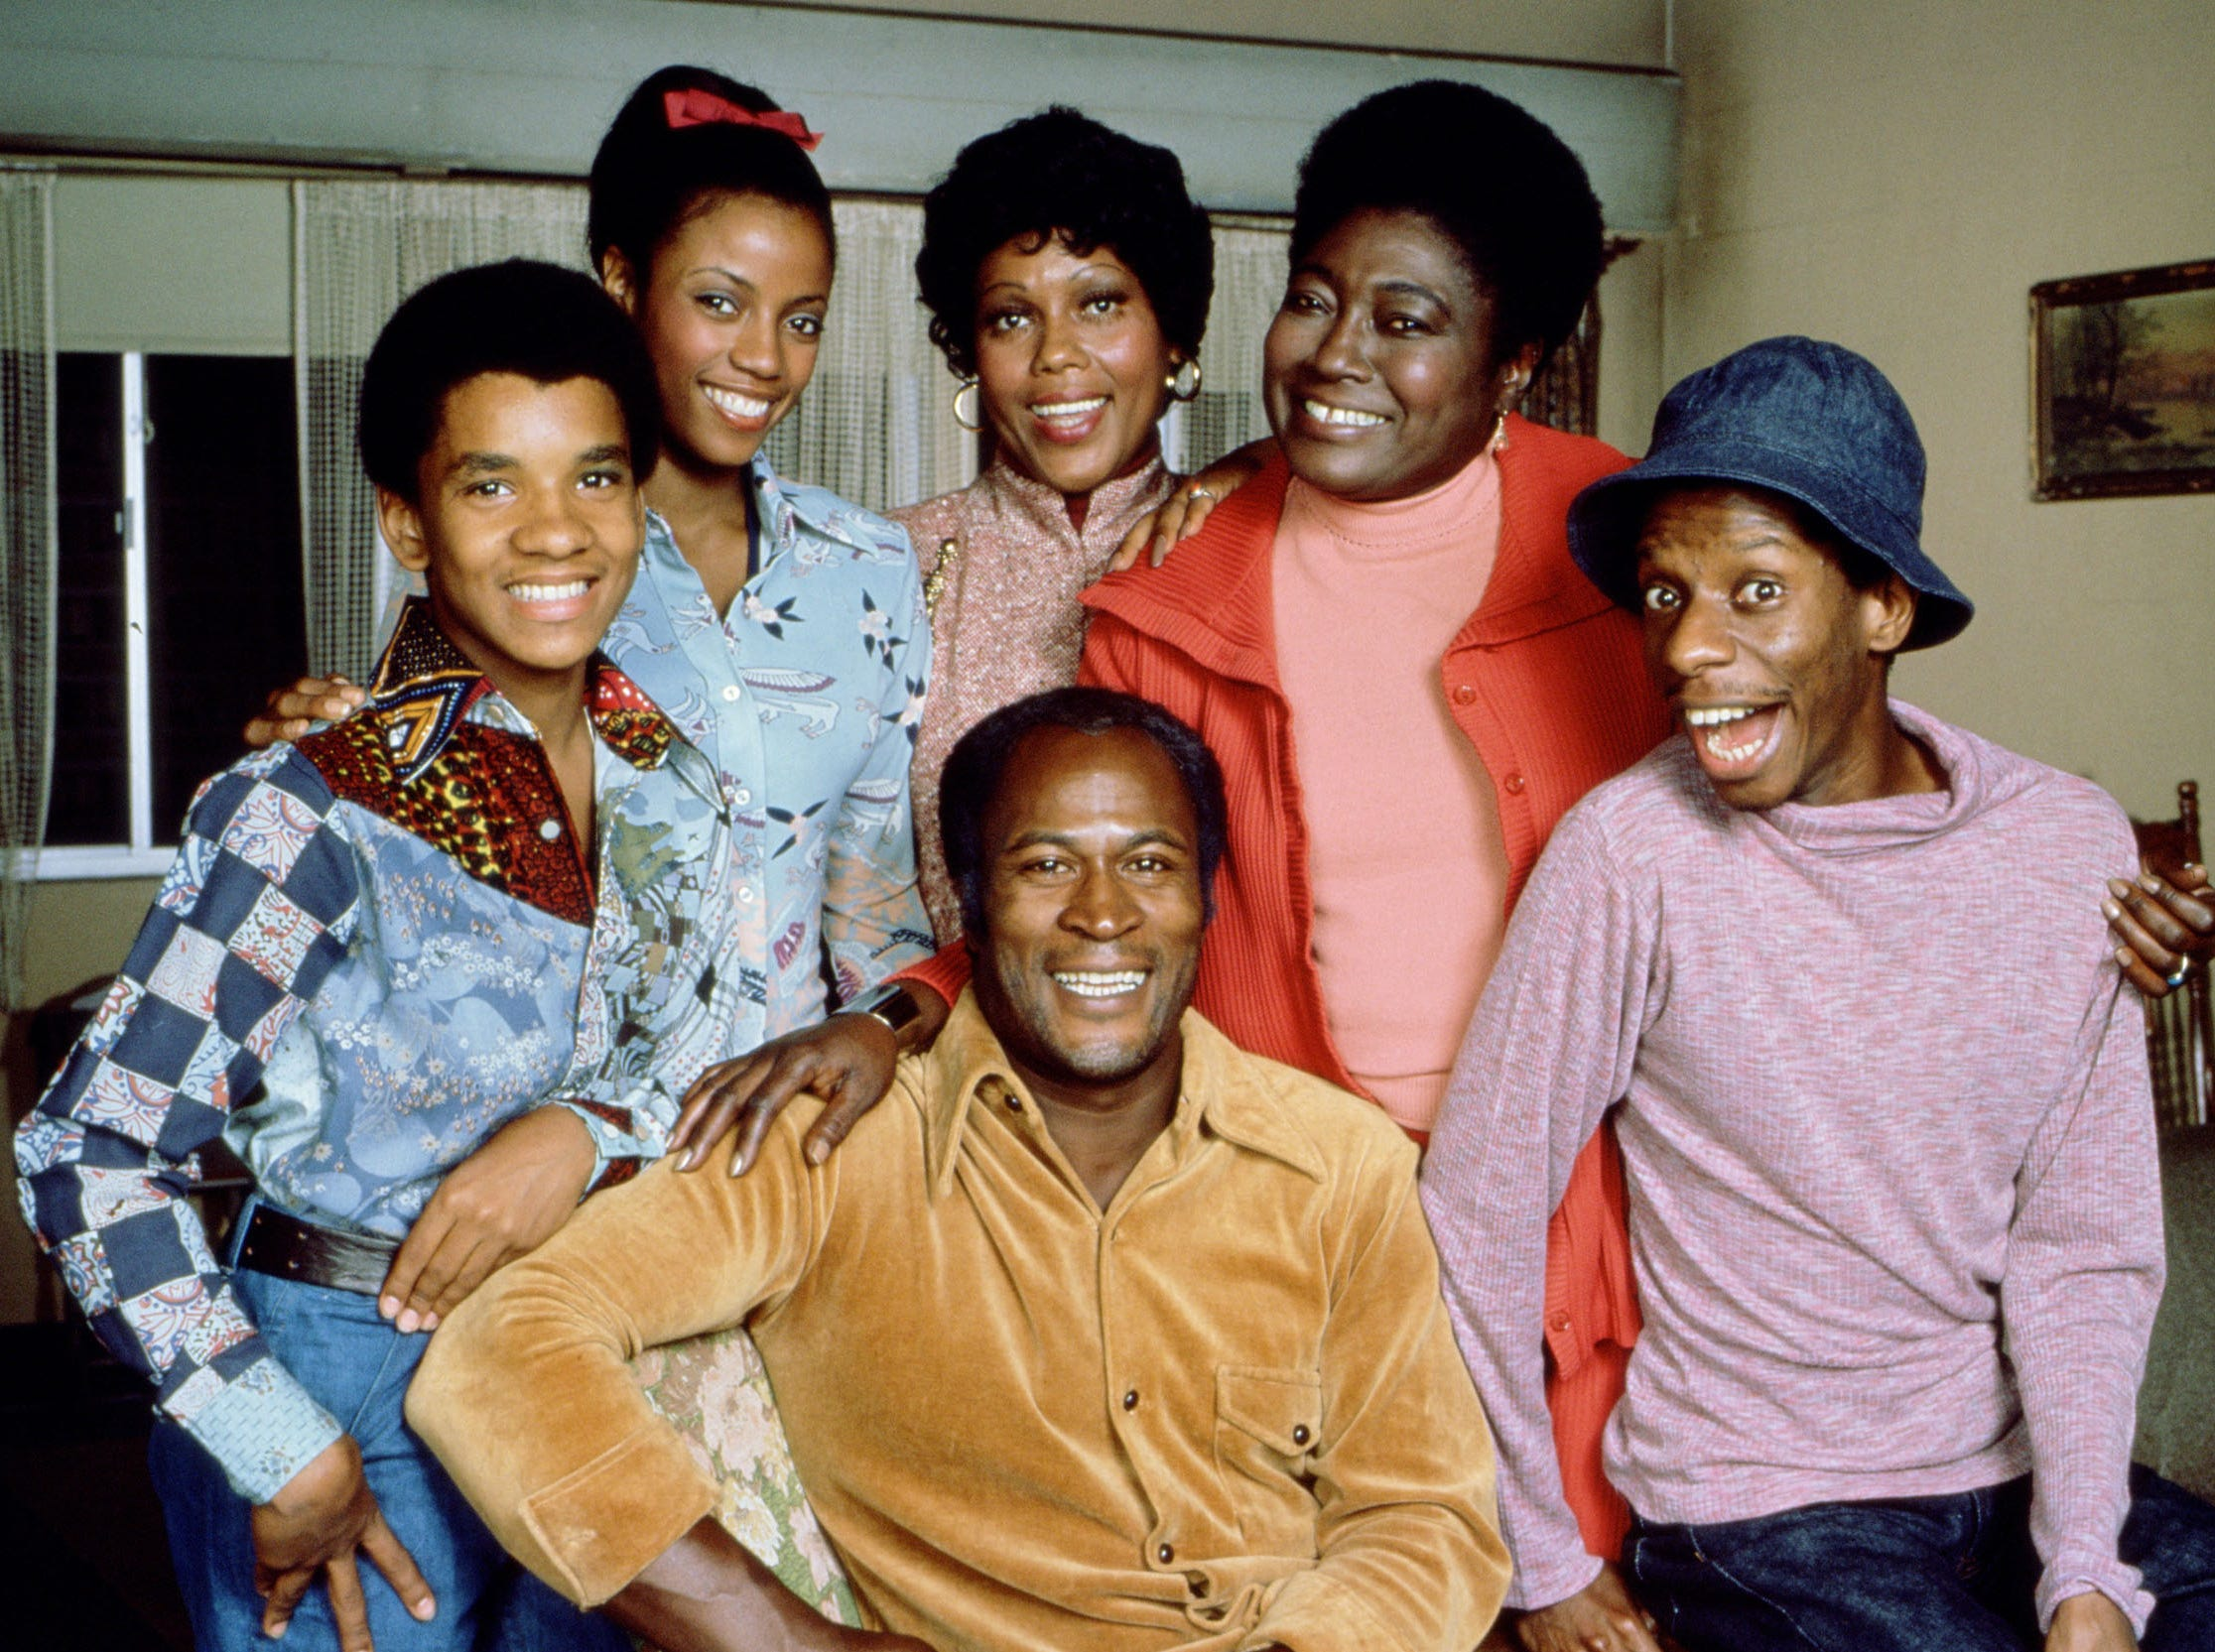 Ralph Carter, Bernnadette Stanis, Ja'net Dubois, Esther Rolle, Jimmie Walker and John Amos from the tv show Good Times. --- DATE TAKEN: rec'd 03/06  No Byline   Sony        HO      - handout   ORG XMIT: ZX45777